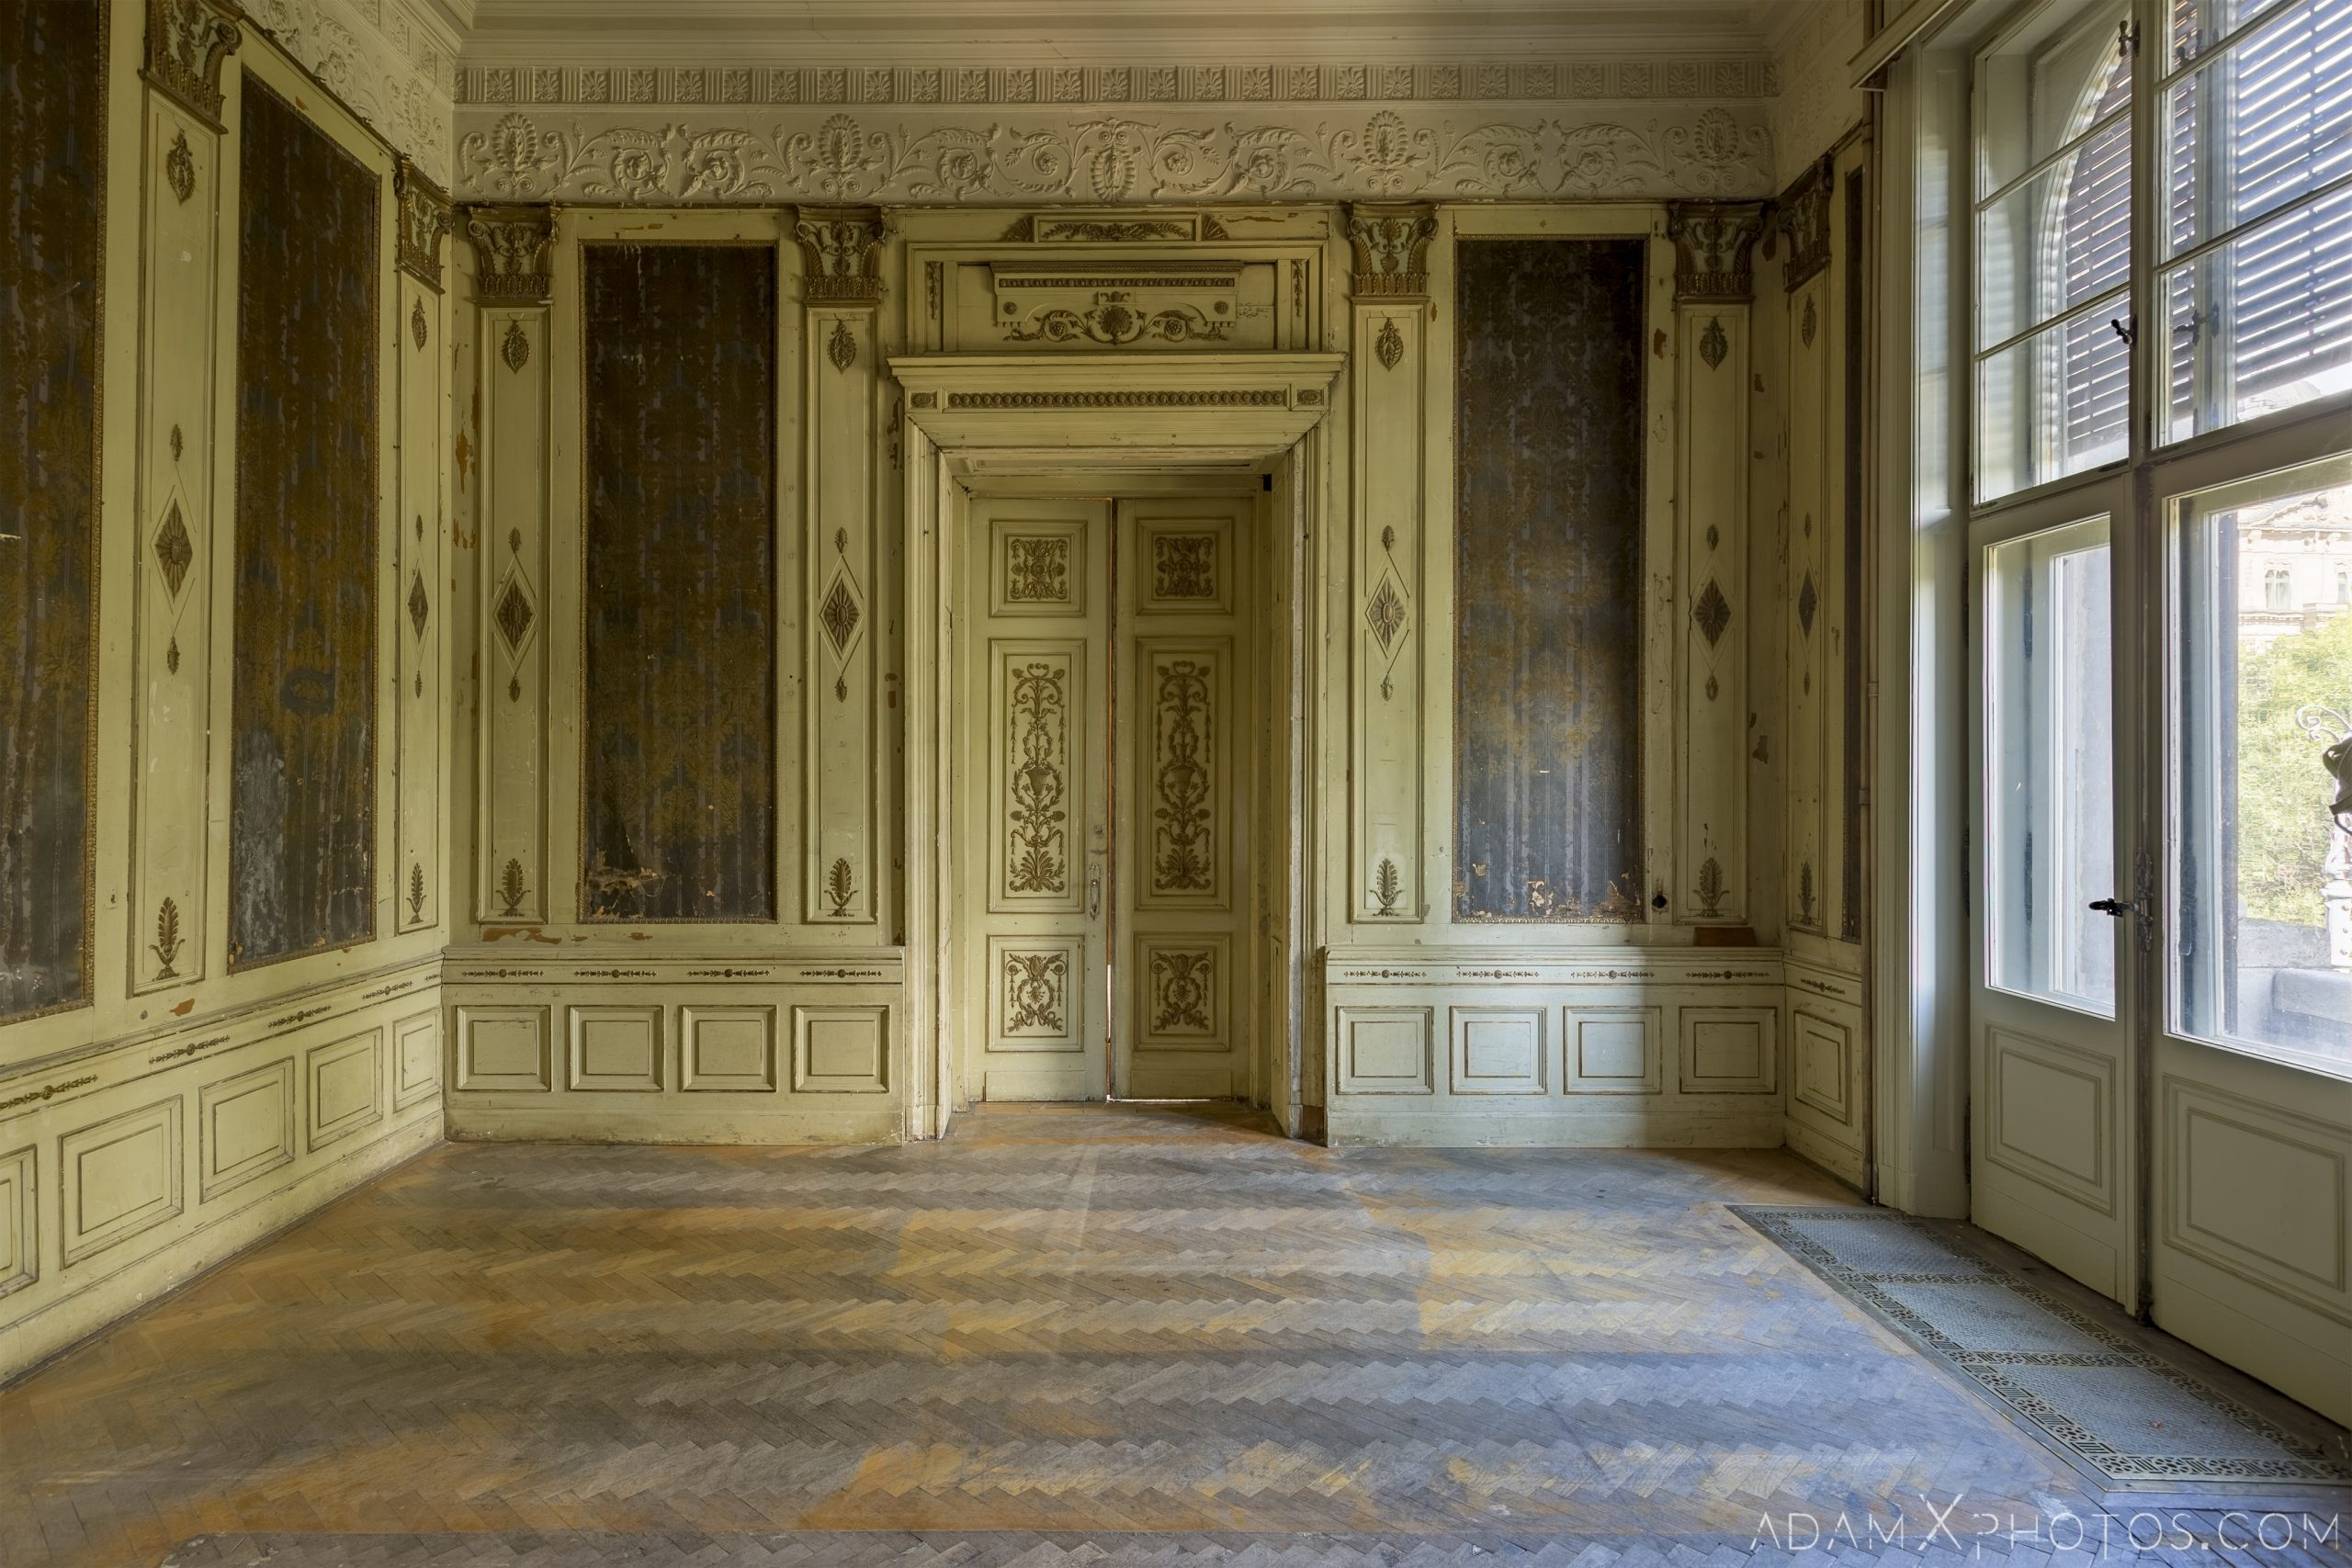 Ornate room painted parquet flooring Adria Palace Budapest Hungary Adam X Urbex Urban Exploration Access 2018 Blade Runner 2049 Abandoned decay ruins lost forgotten derelict location creepy haunting eerie security ornate grand neo baroque